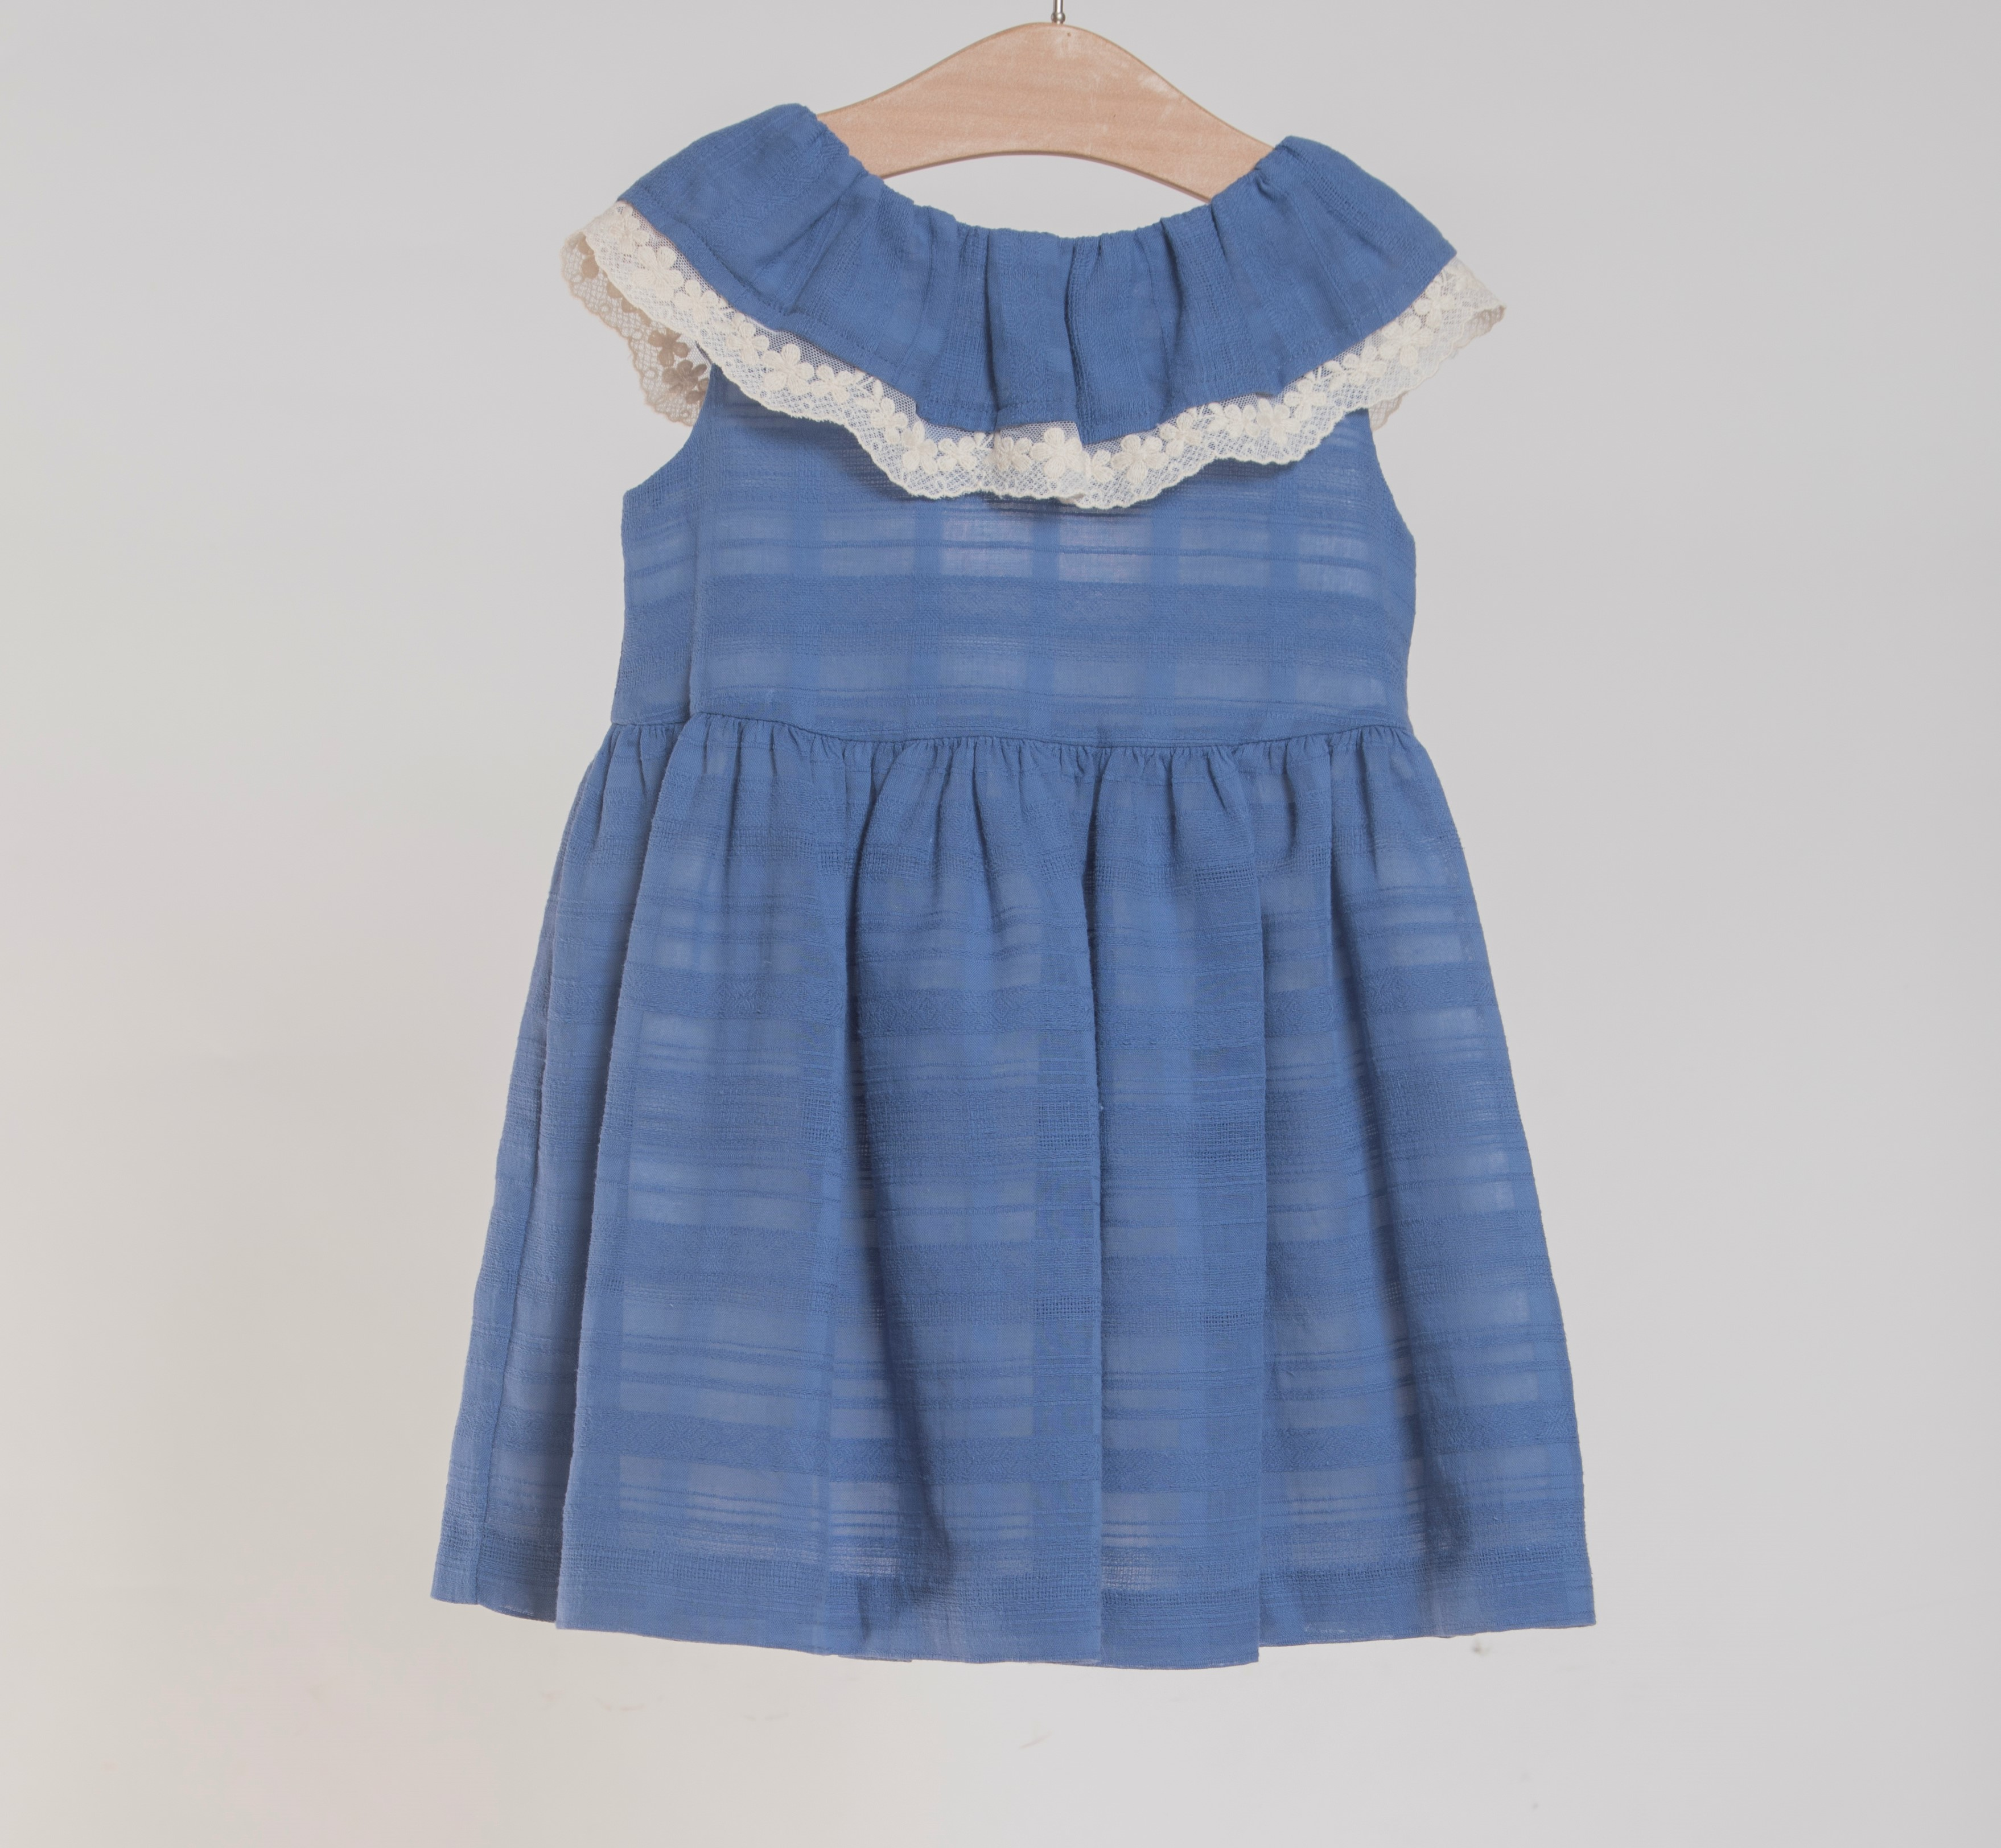 427c186bbad5 FINA EJERIQUE GIRLS ROYAL BLUE   IVORY FRILLED DRESS REF.  M2445 ...